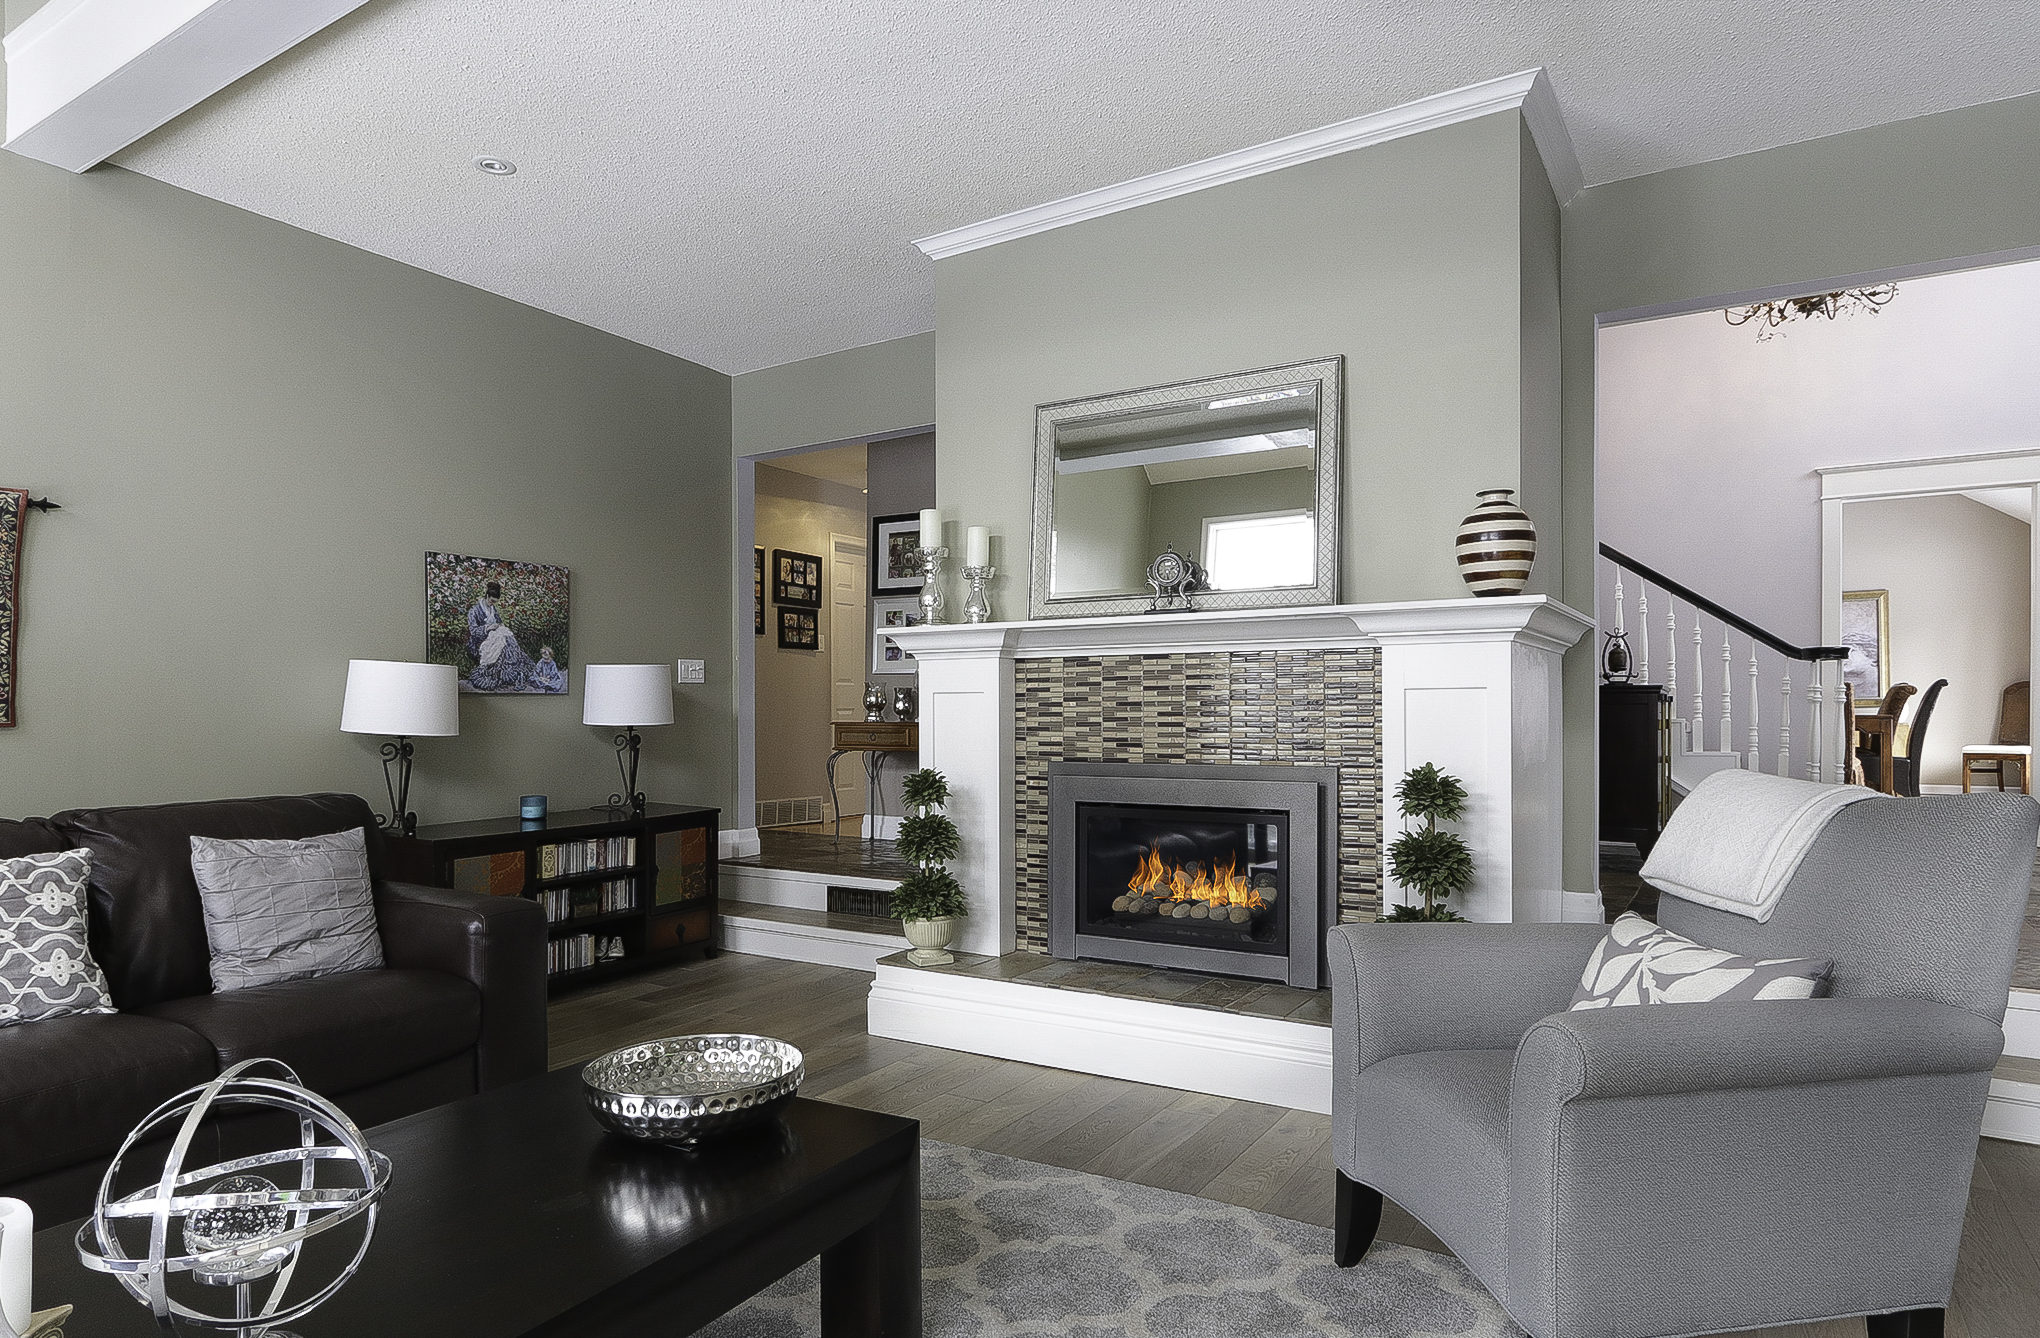 A photo of a living room with fireplace